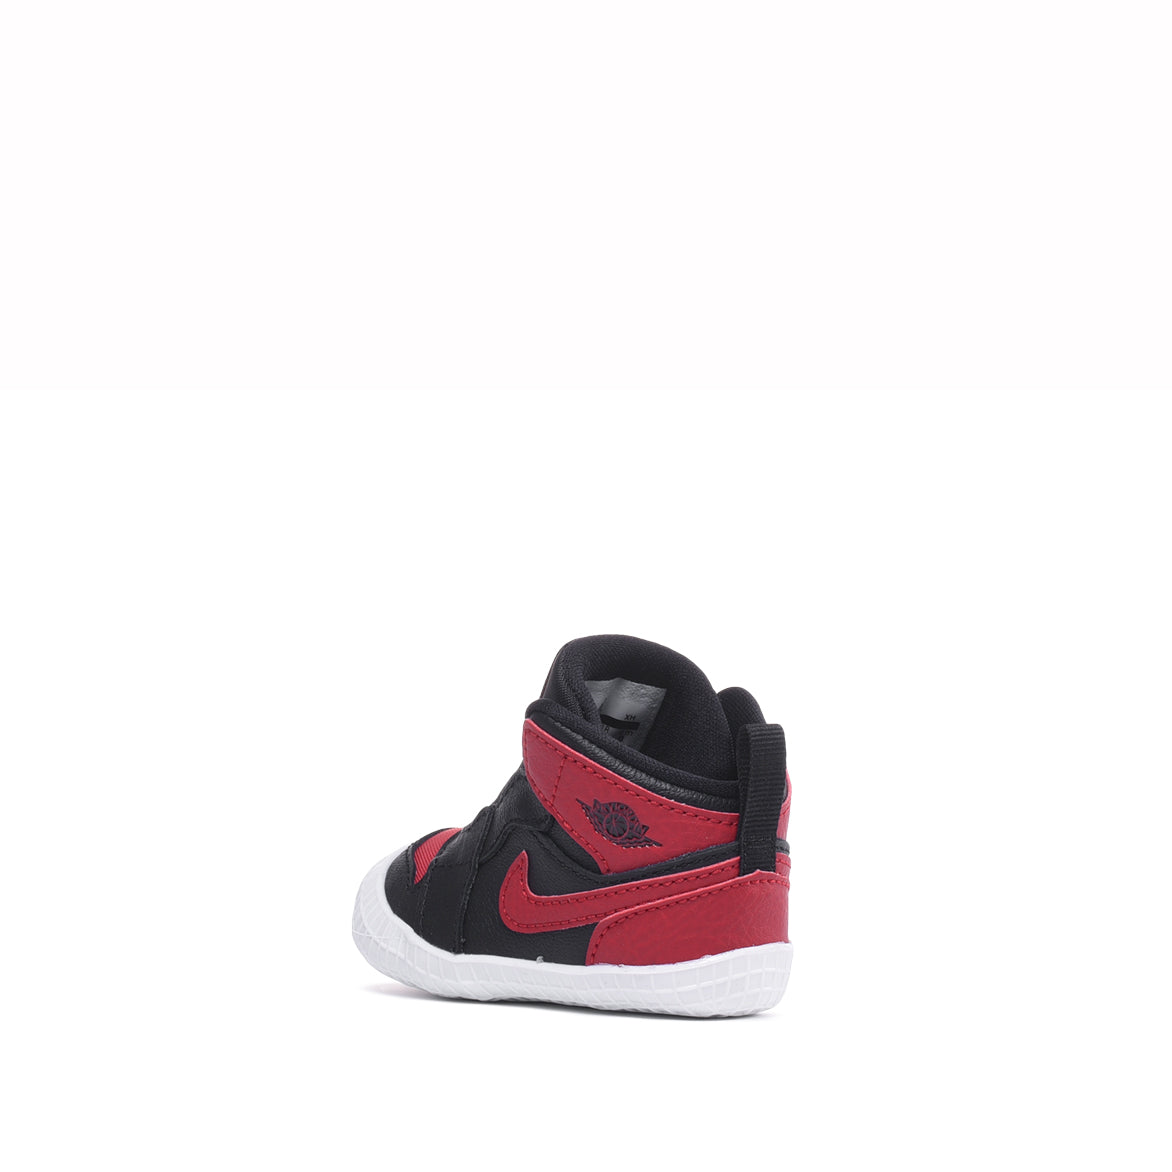 JORDAN 1 CRIB BOOTIE - BLACK / VARSITY RED / WHITE